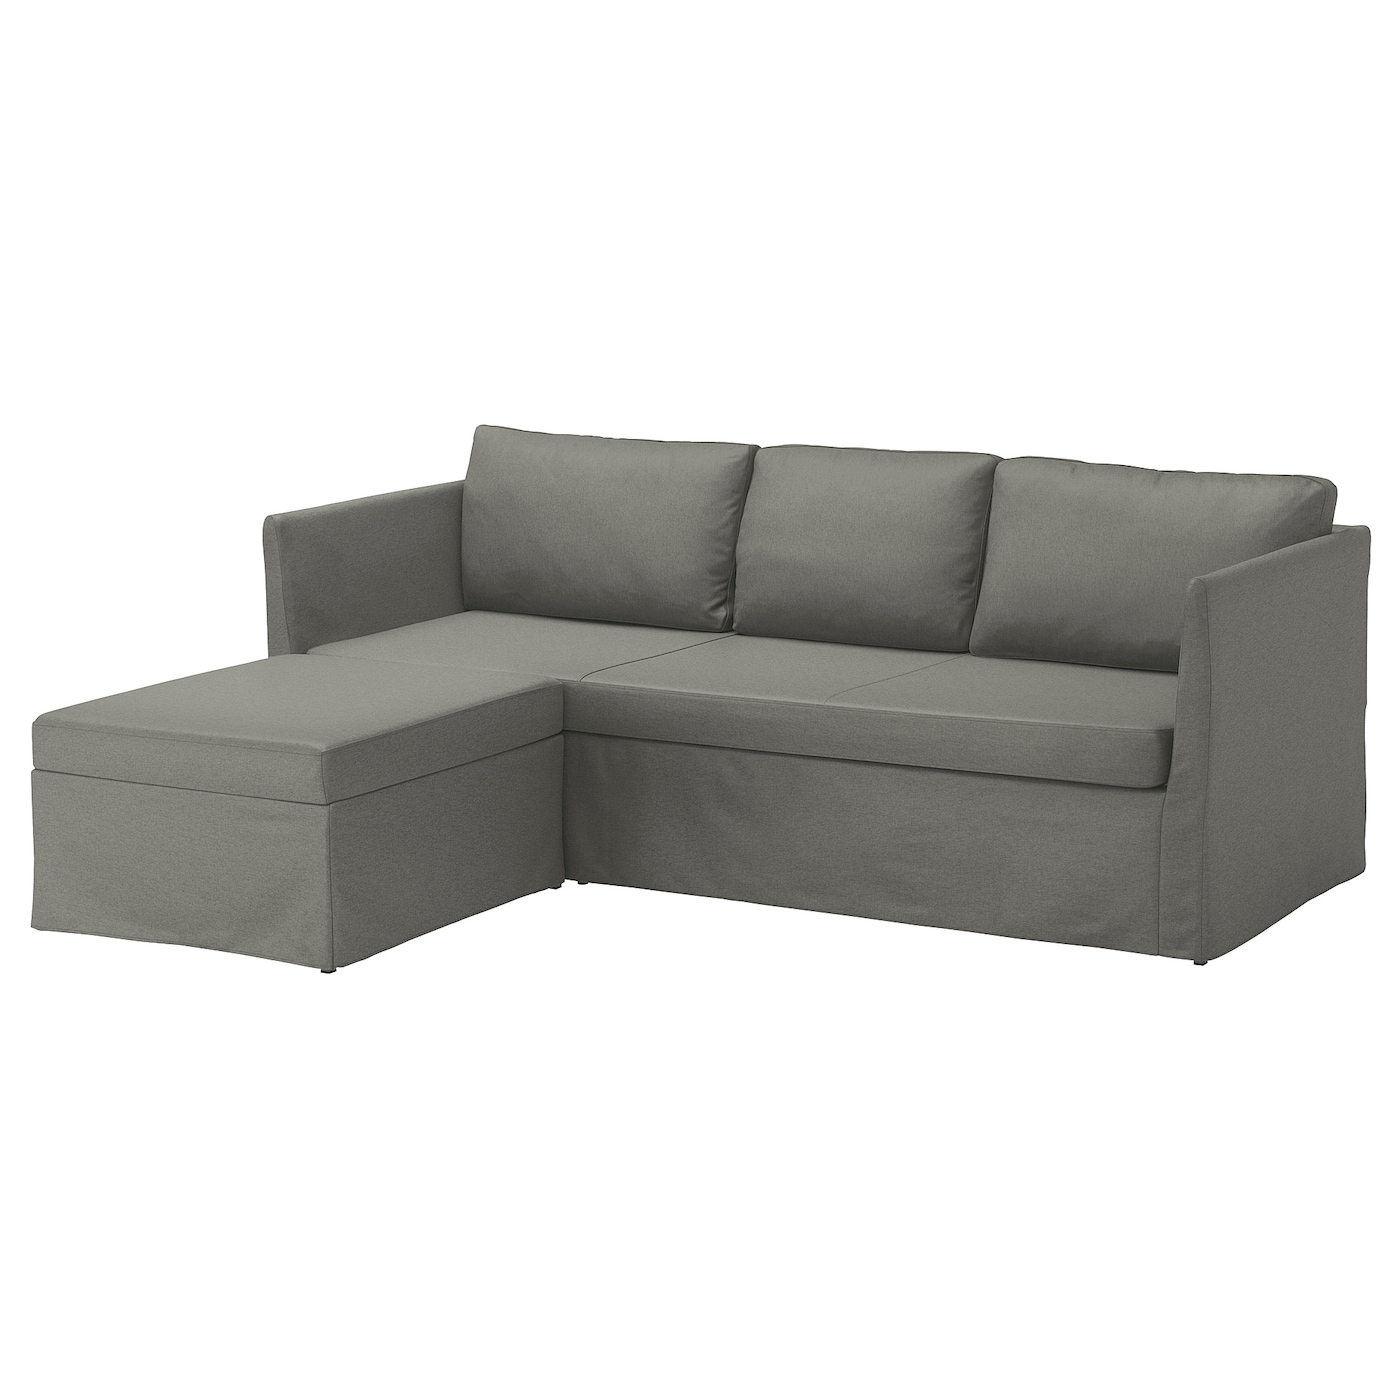 Sofa Beds Ikea Ireland Dublin